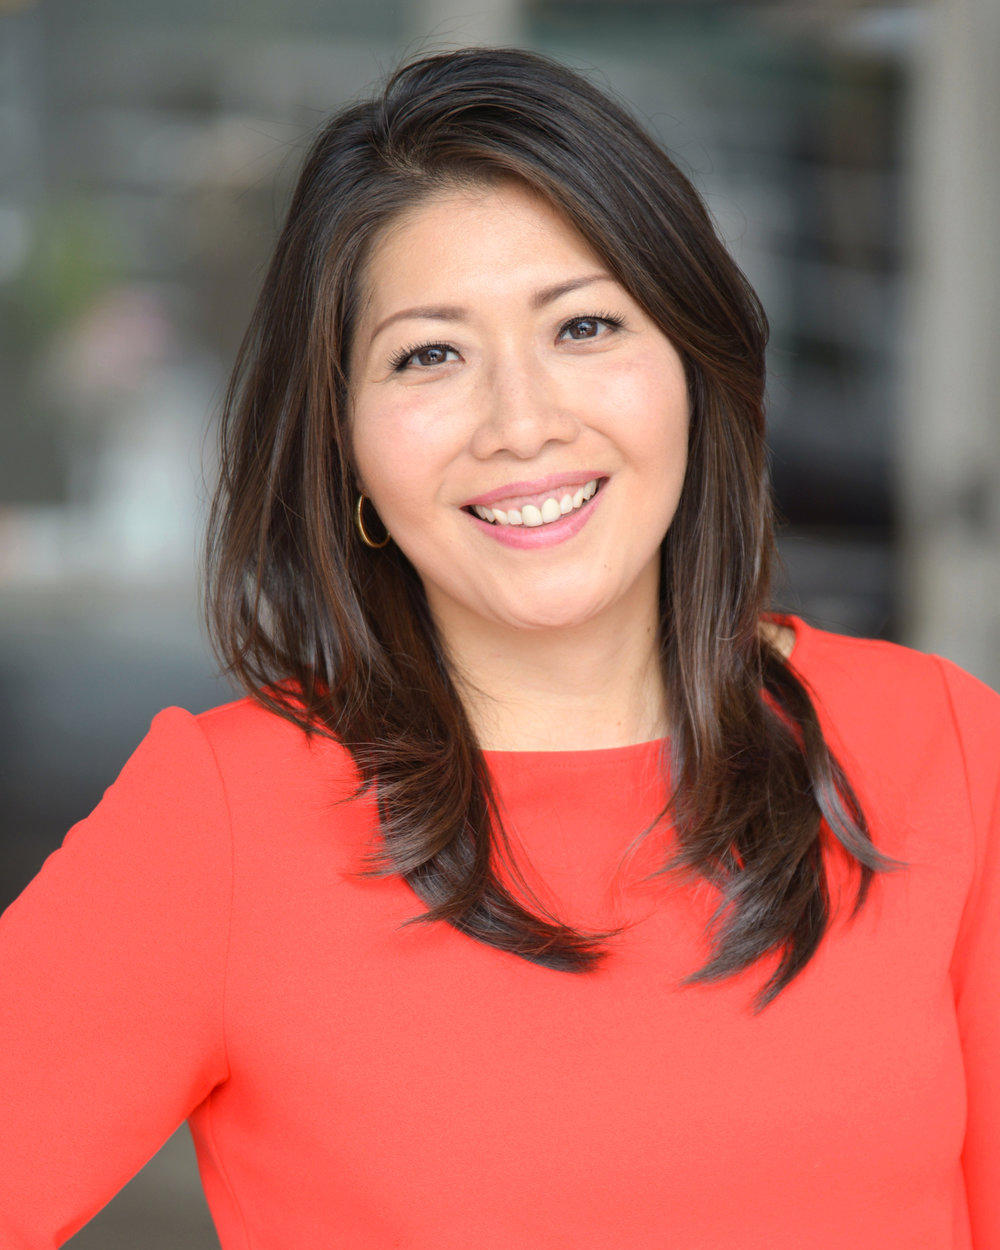 Susan Oh   Susan Sim Oh is co-owner of WKTB-CD, a local Class A television station in the Atlanta DMA broadcasting top-tier Spanish and Korean broadcast networks, serving the area's fastest growing minority groups. Oh is also Managing Partner for Telemundo Atlanta, a premier Spanish-language television station. Oh has garnered the coveted Overall Station Excellence Emmy® Award for 2013, 2014, 2016, and 2017. Oh received her Executive MBA from Georgia State University and her Bachelors of Science in Broadcast Journalism from the University of Illinois - Urbana Champaign. Oh is married with two children and resides in Brookhaven.